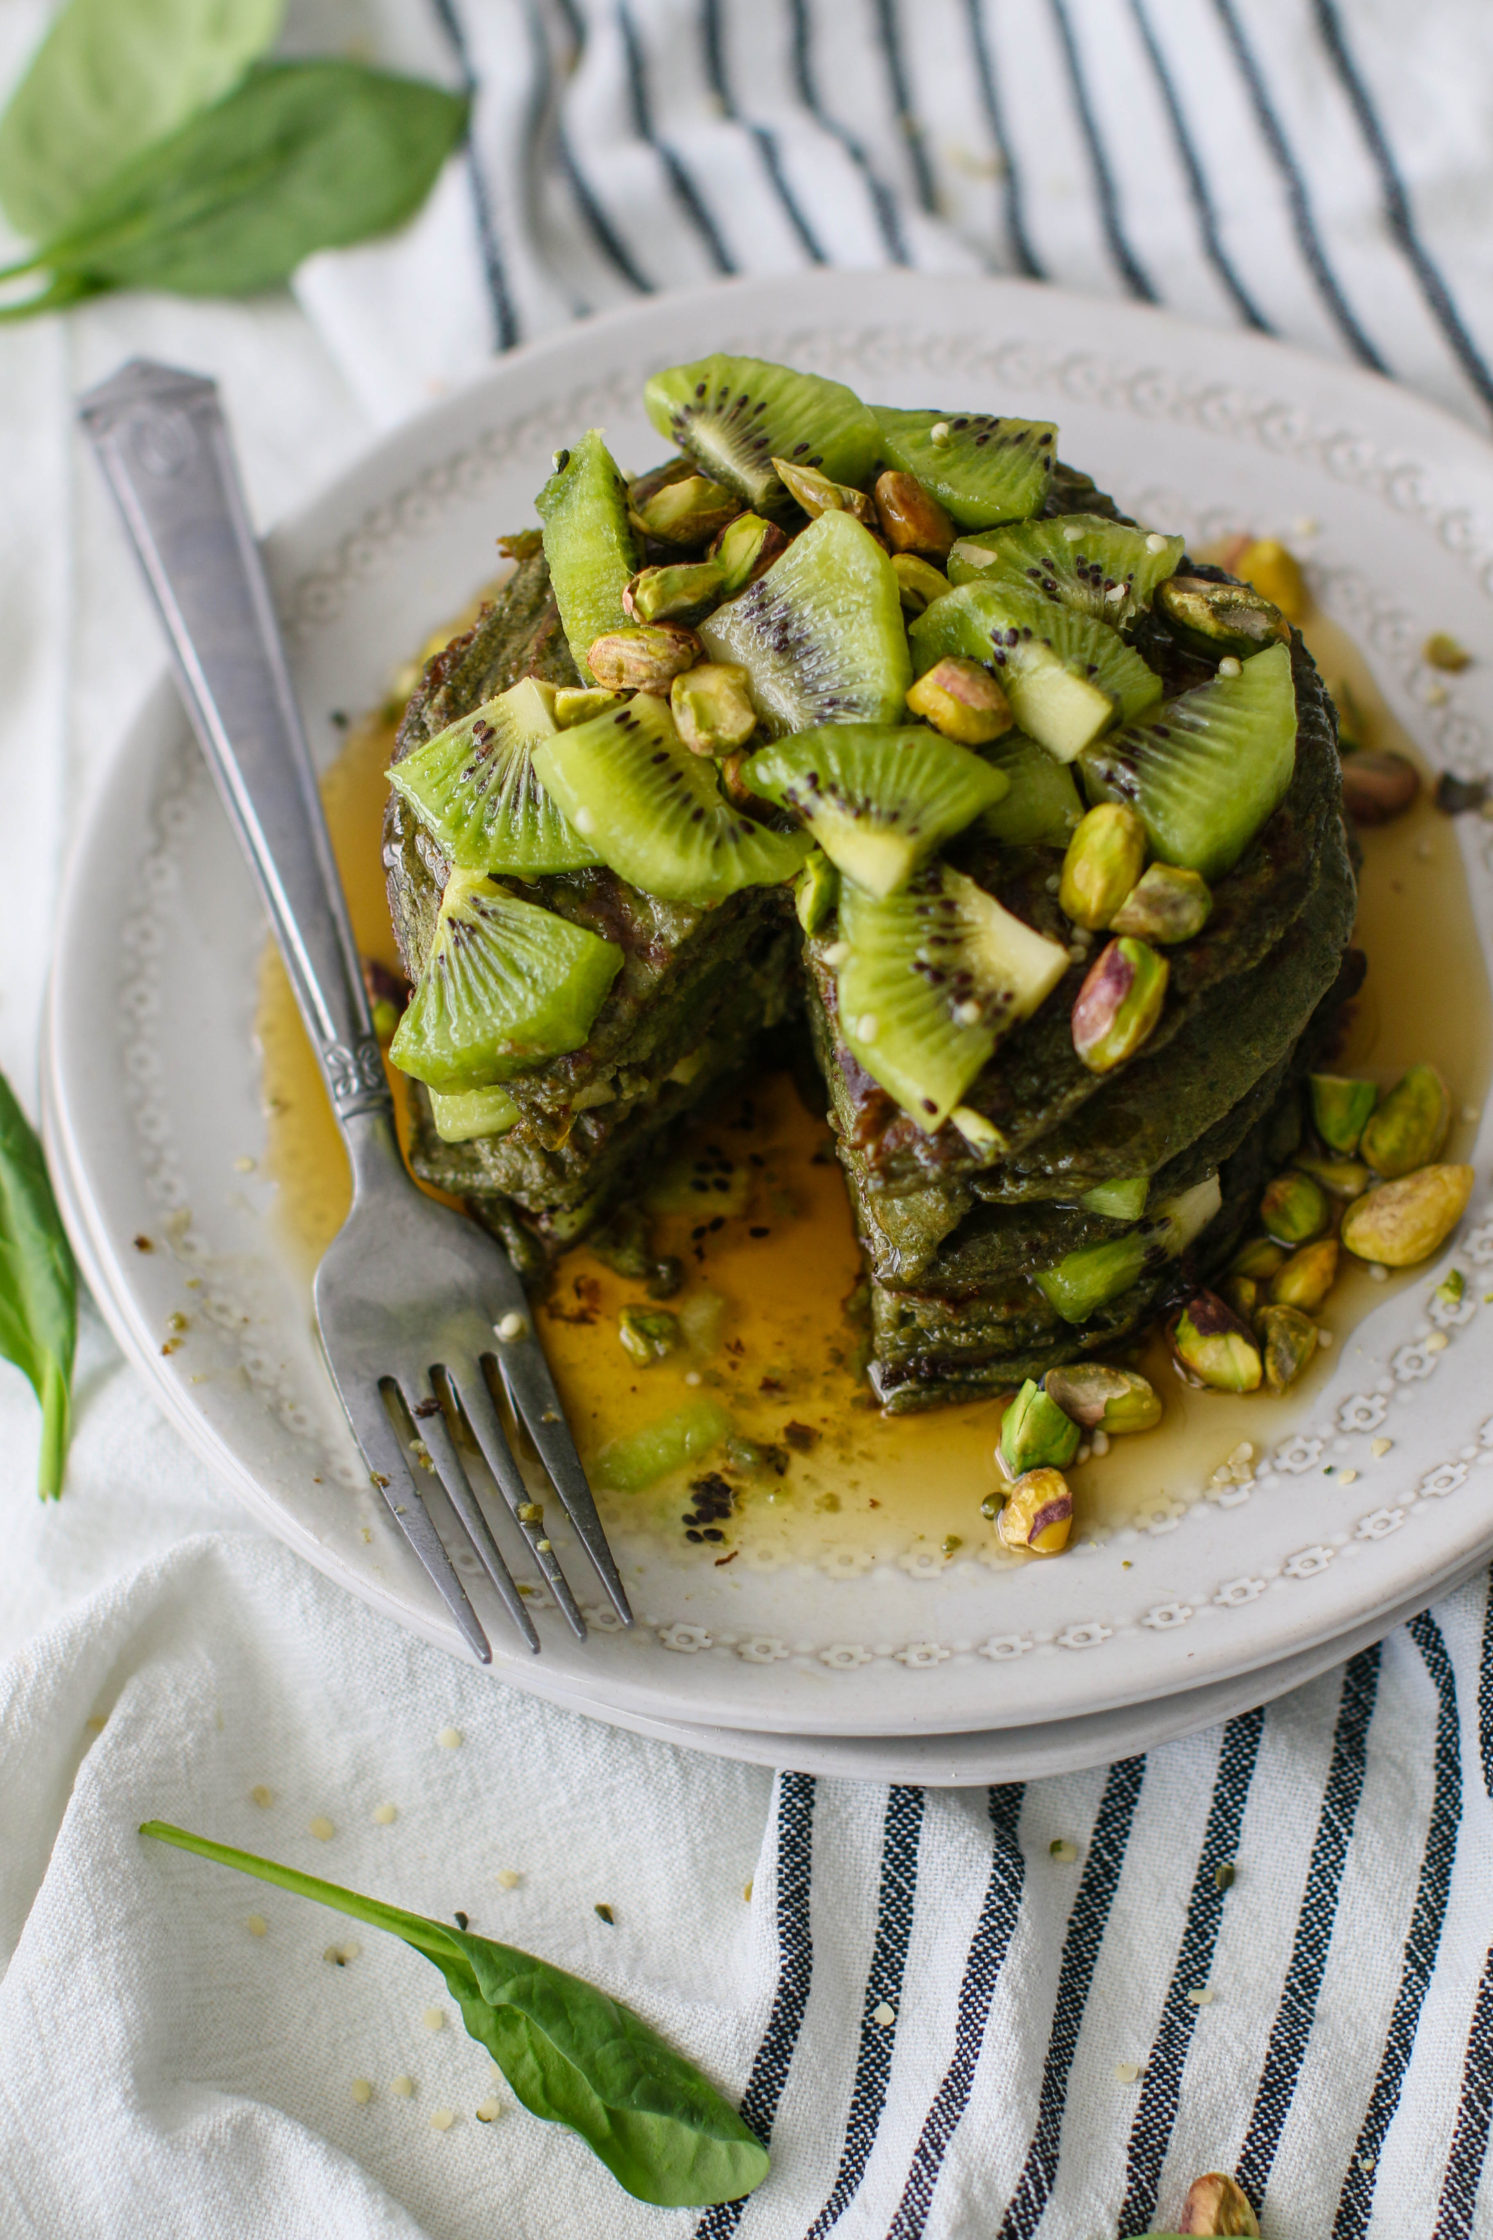 Glowing Green Protein Pancakes by Flora & Vino